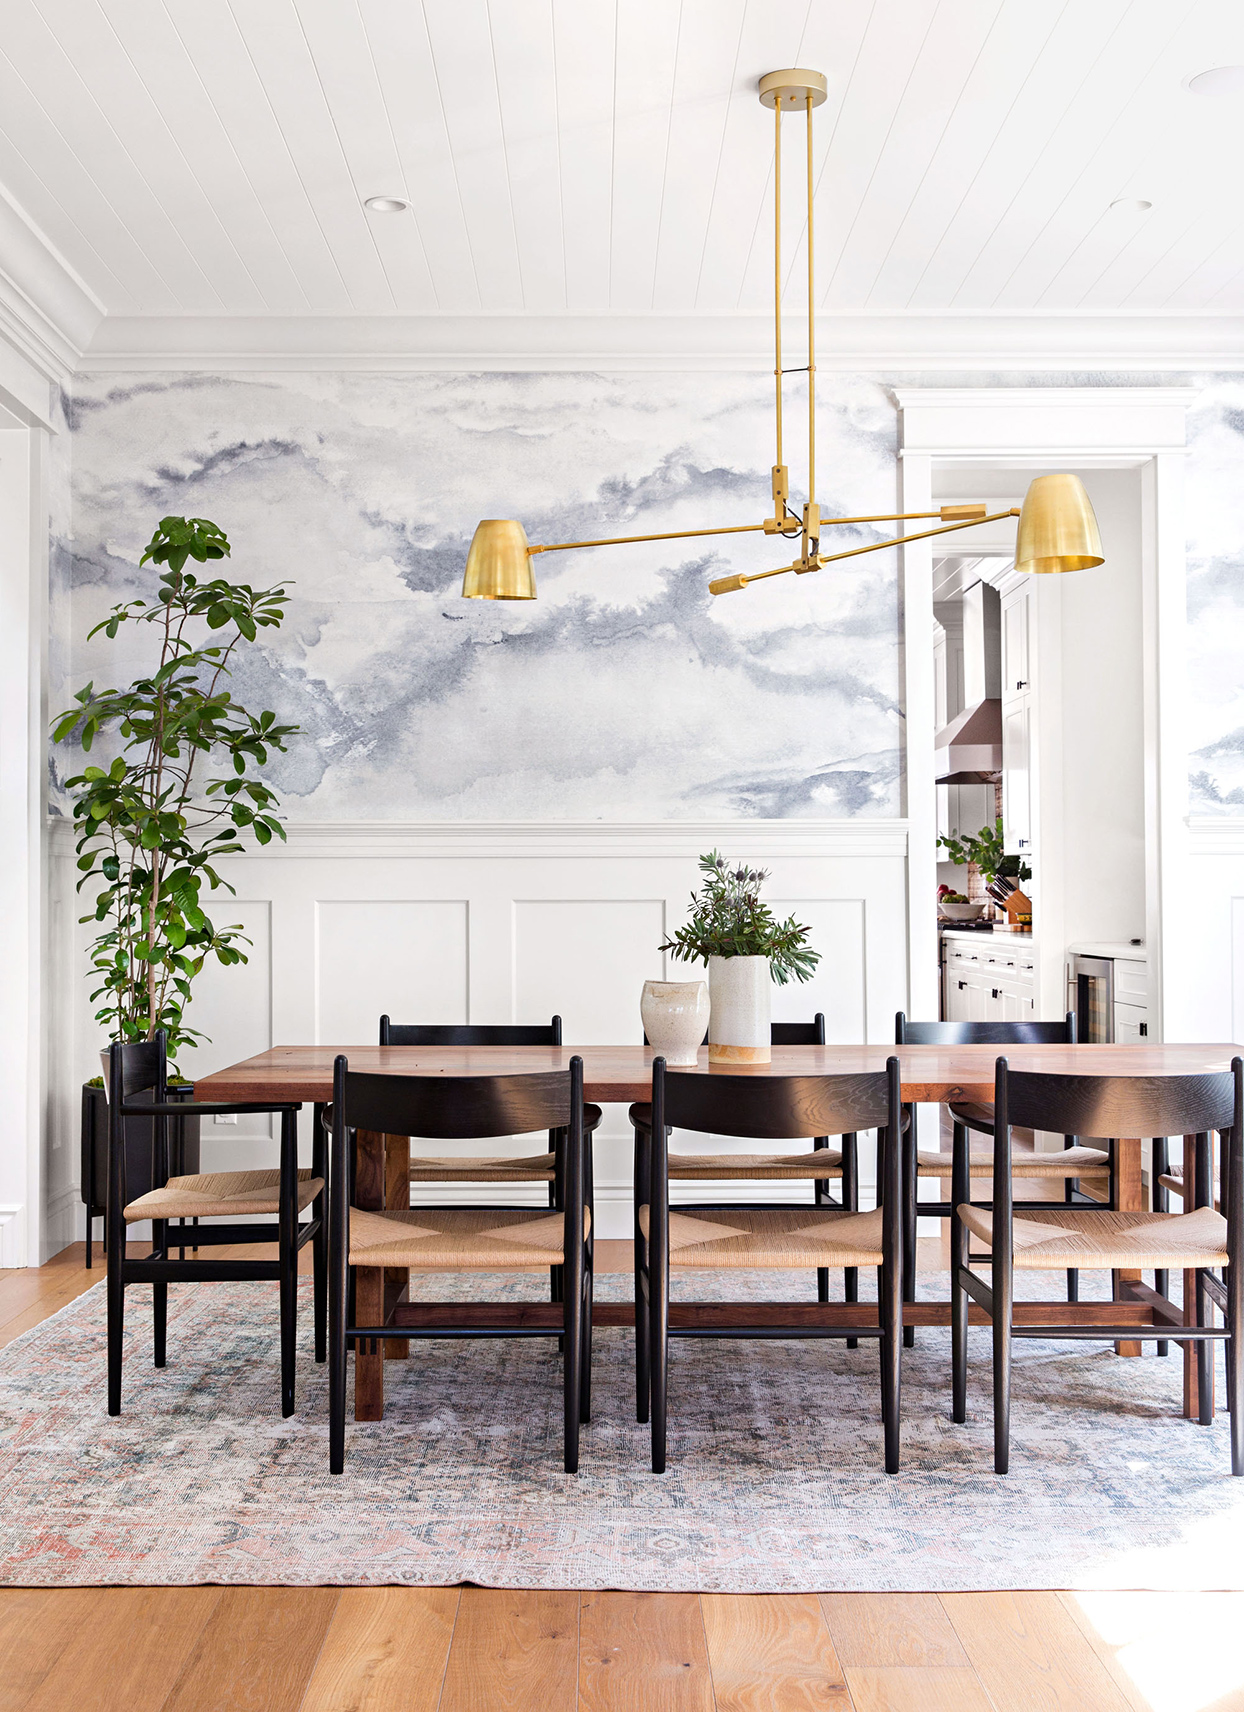 How to Find the Right Lighting Style for Your Space